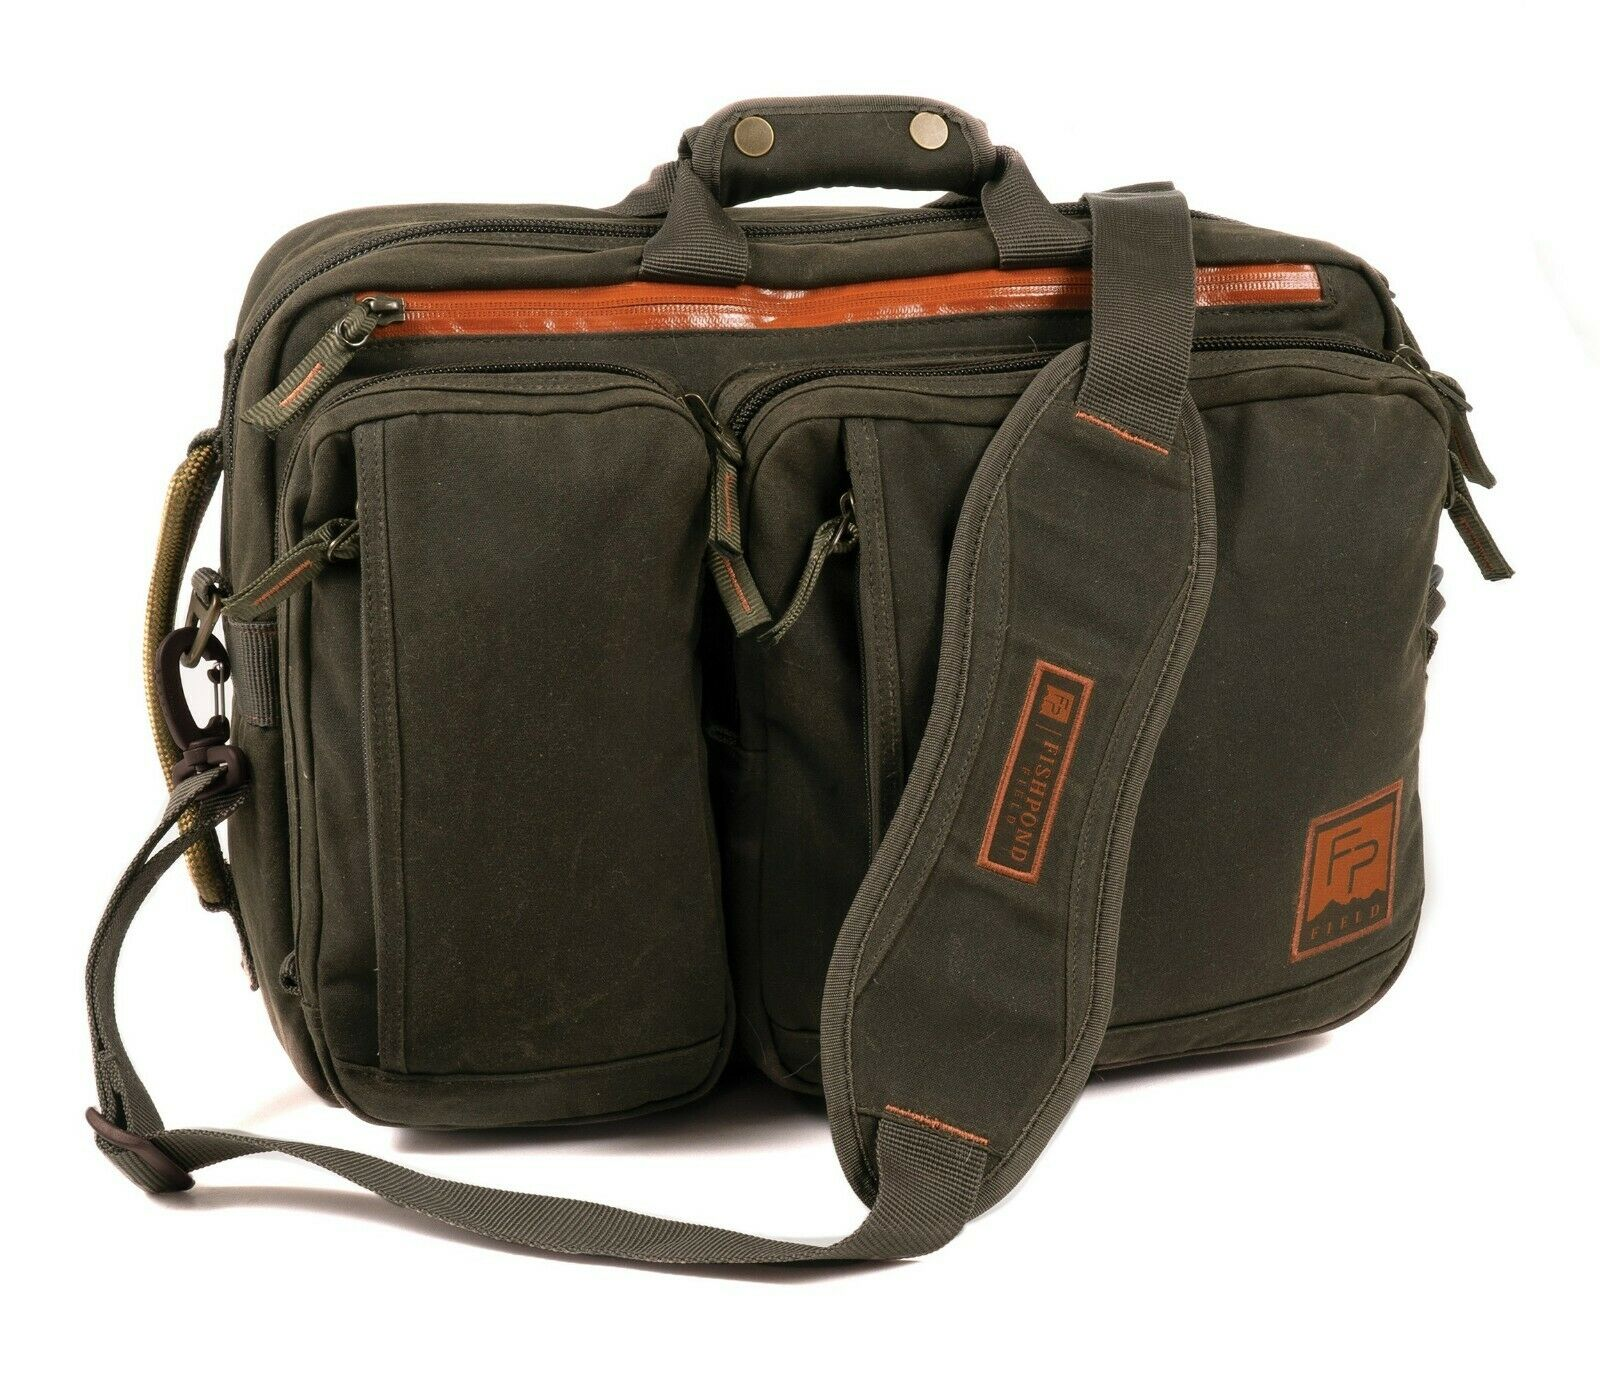 Fishpond Boulder Briefcase  Coloree Peat Moss  nuovo